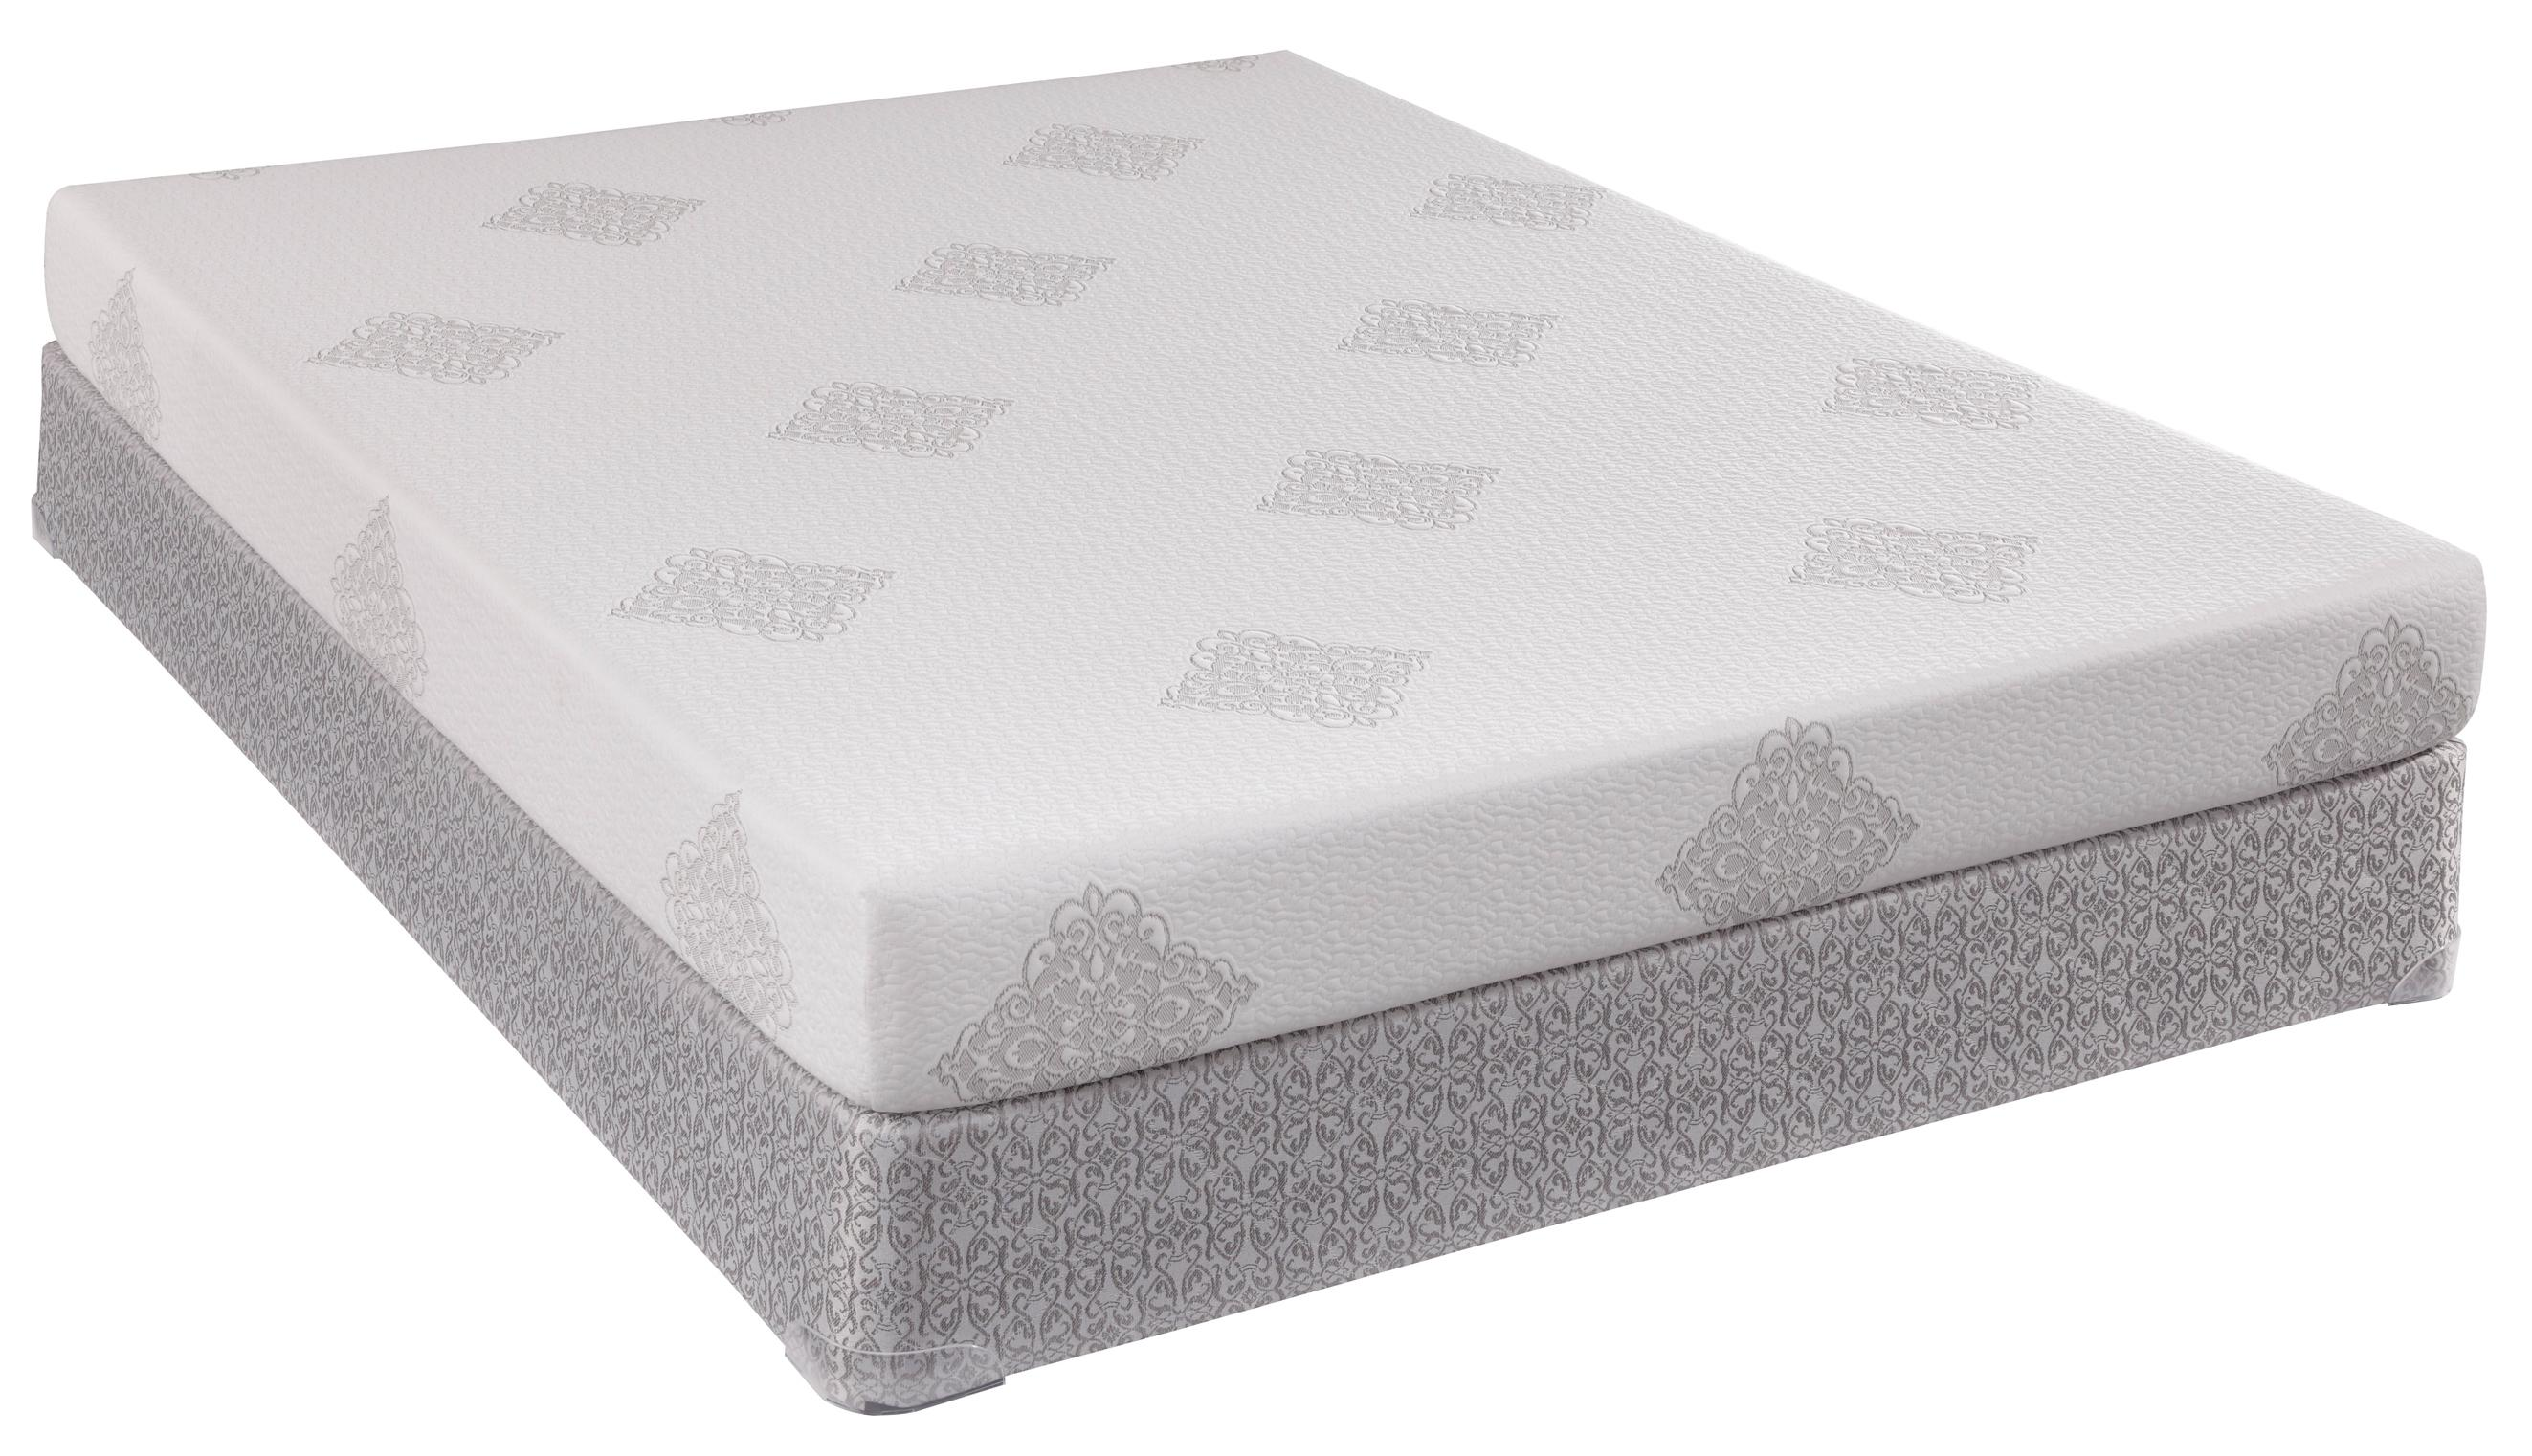 Sealy Comfort Series Boca Breeze Twin Mattress and Low Profile Box Spring - Item Number: 501187T+646949T